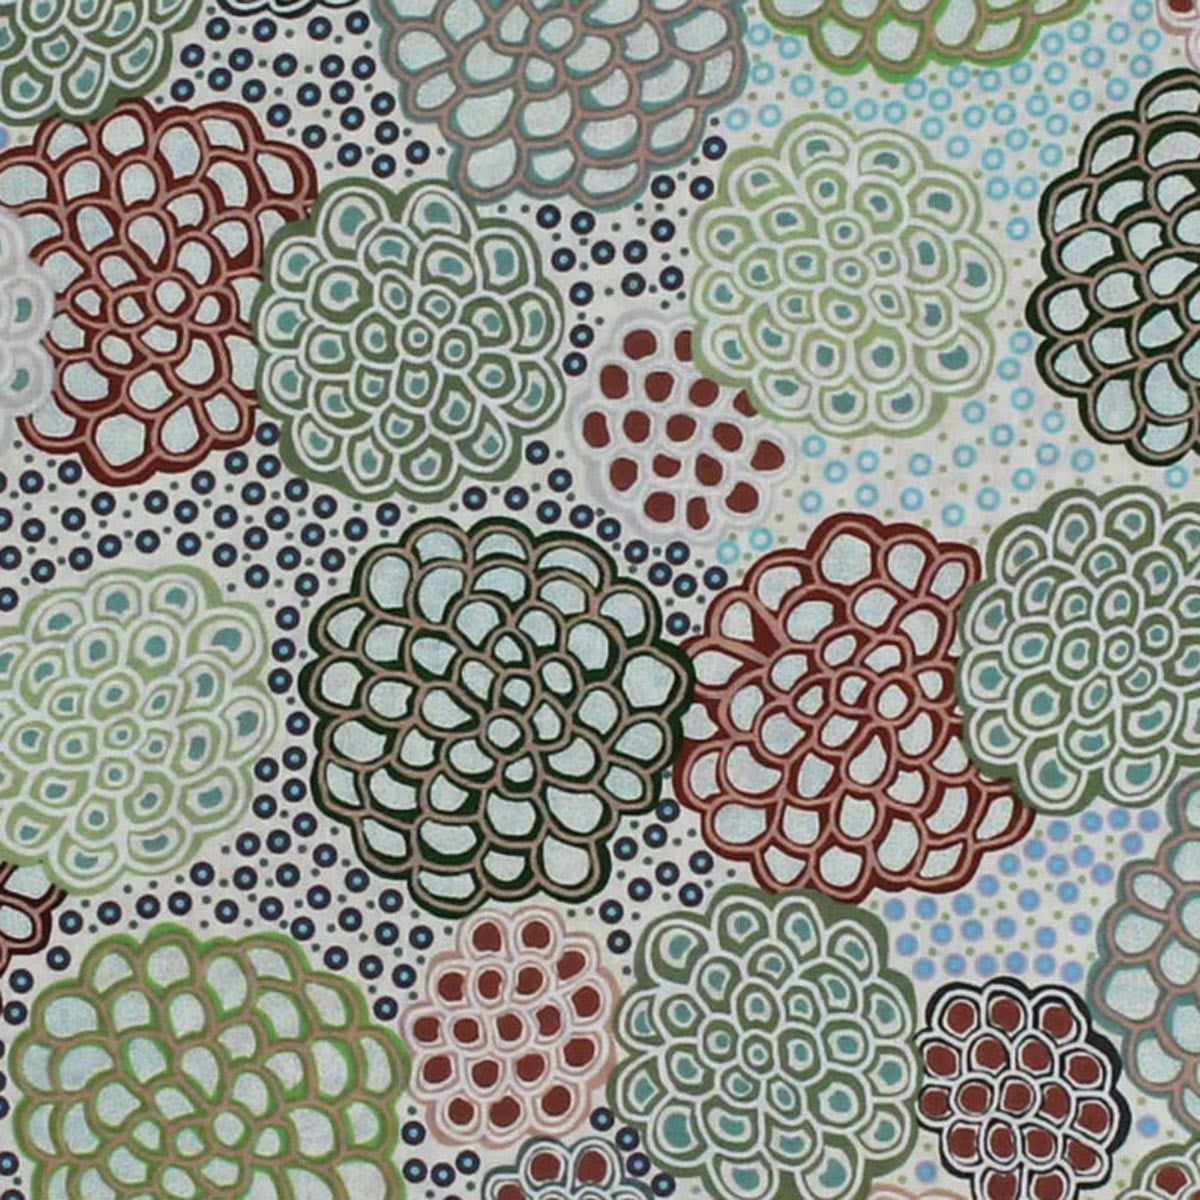 DANCING FLOWERS GREEN by Australian Aboriginal Artist JUNE SMITH